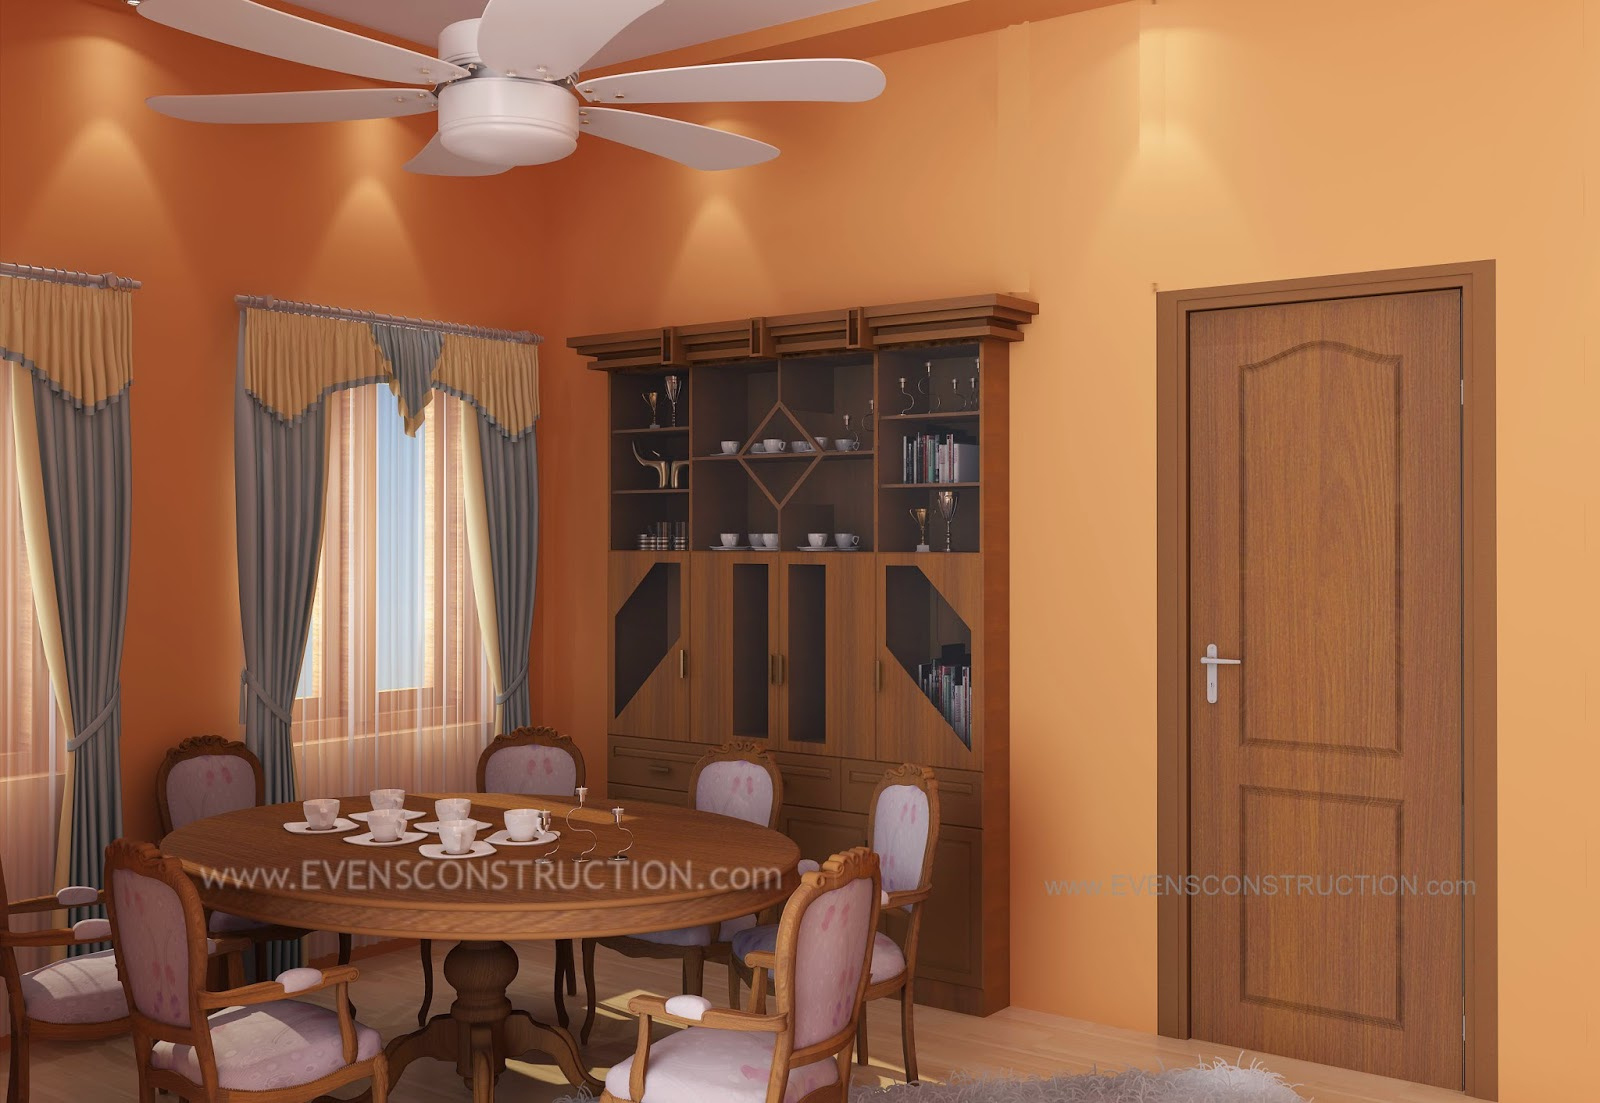 Evens construction pvt ltd kerala dining room design for Dining room designs kerala